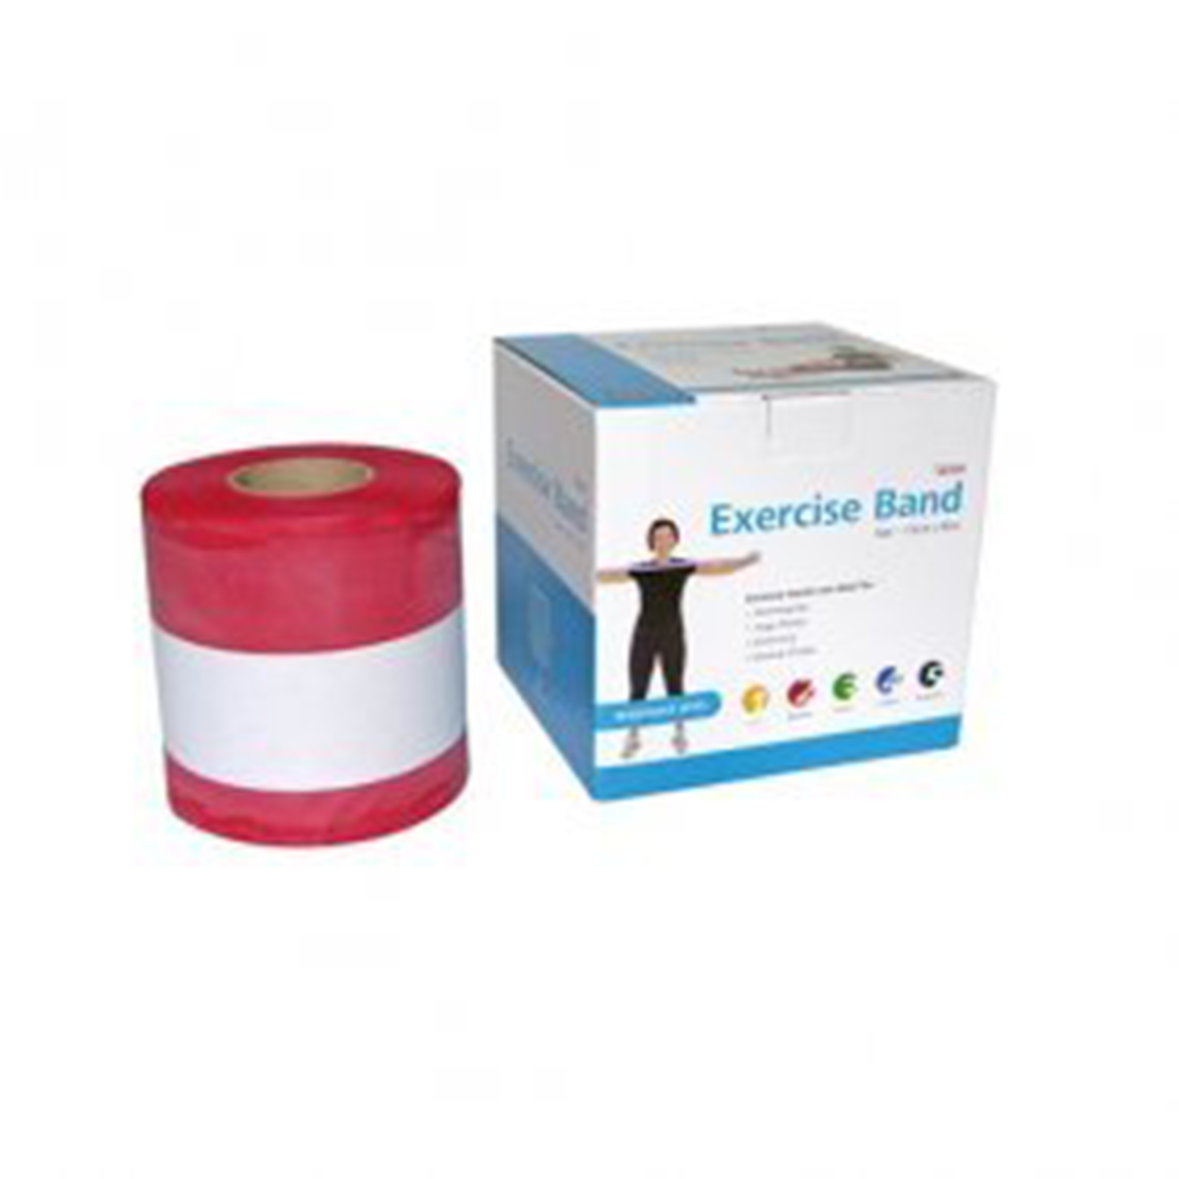 Exercise Band Medium Red